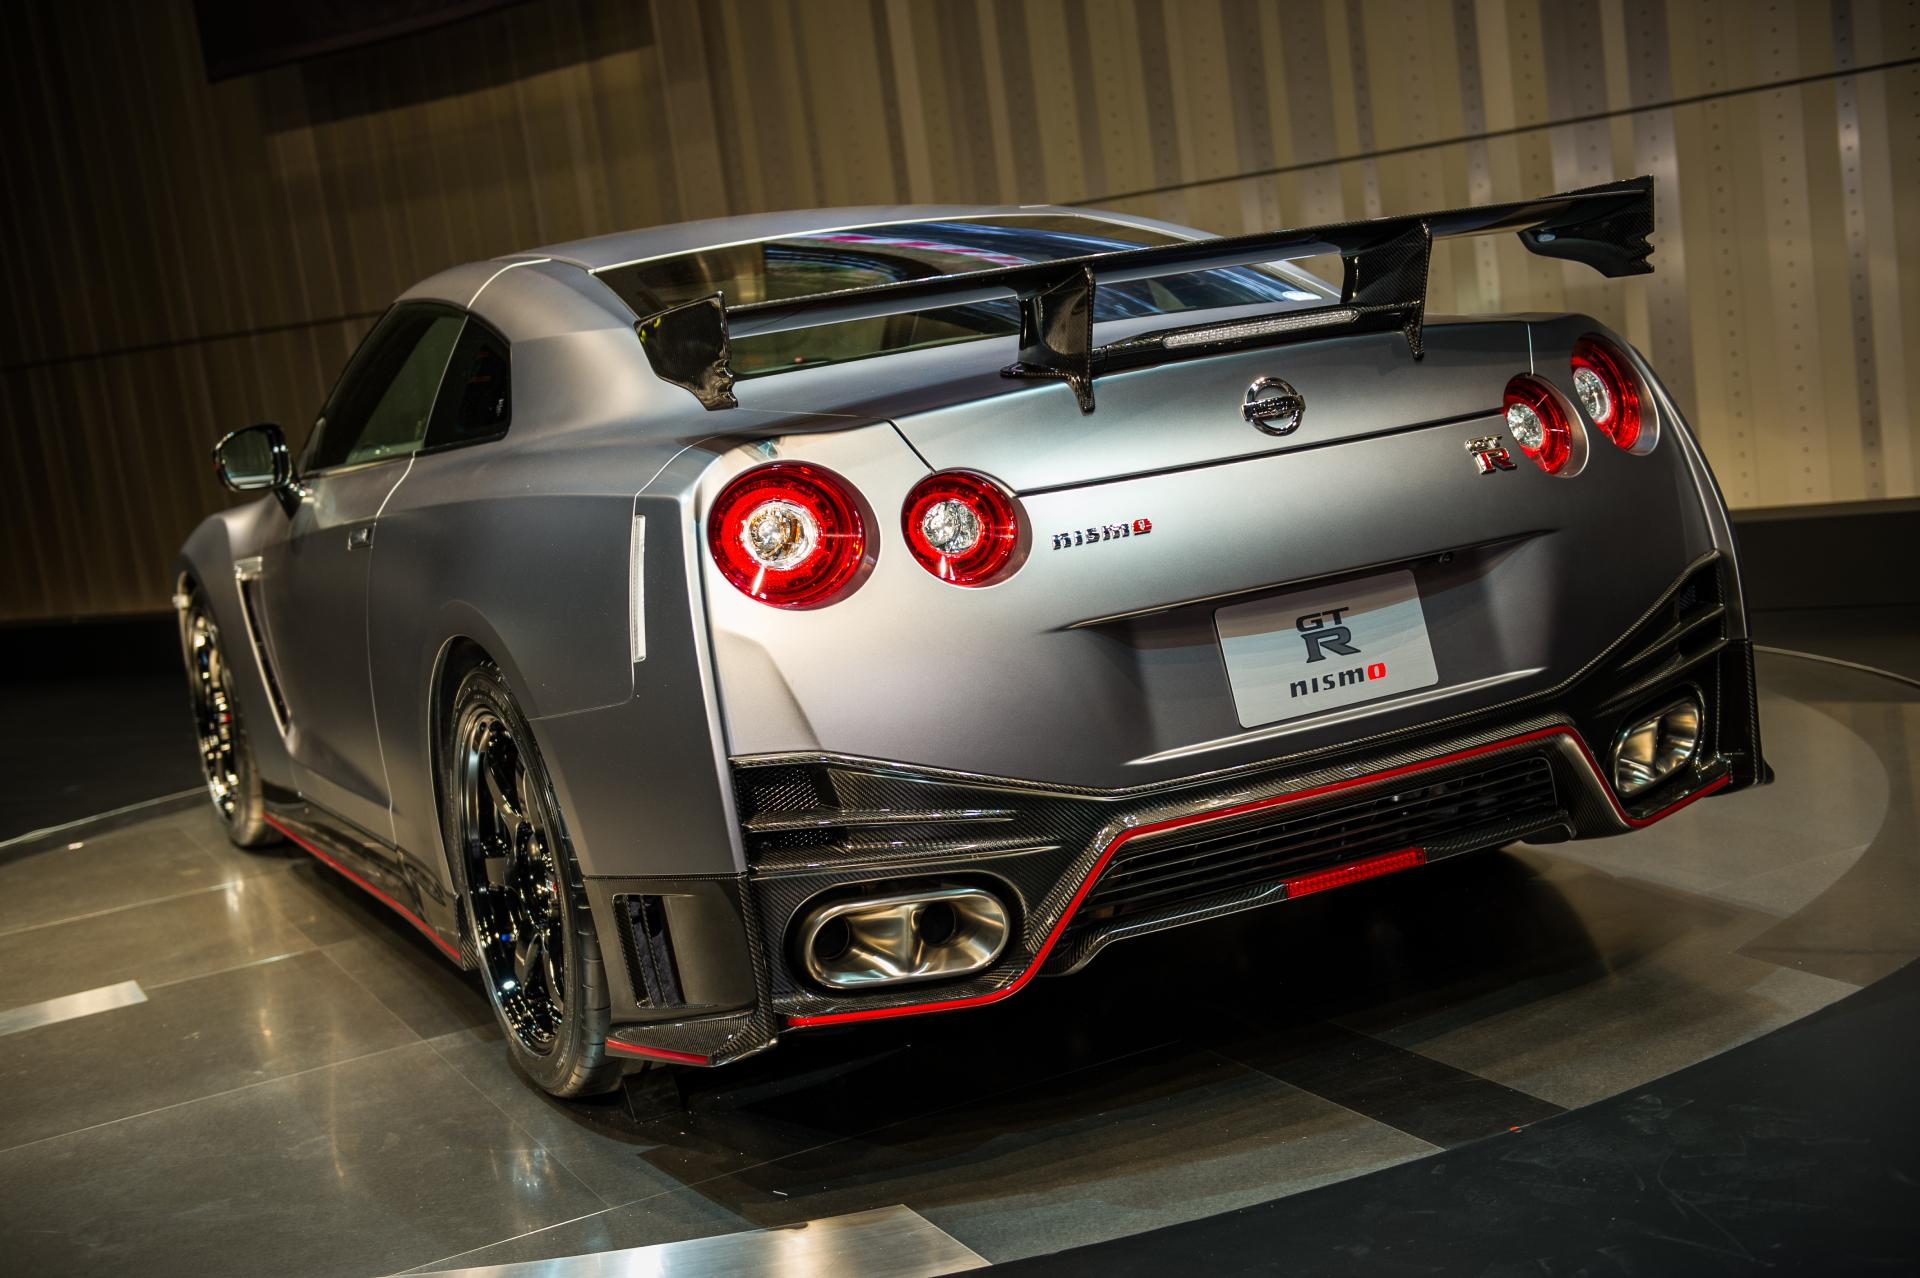 2015 nissan gt r nismo images photo 2015 nissan gt r nismo photo. Black Bedroom Furniture Sets. Home Design Ideas